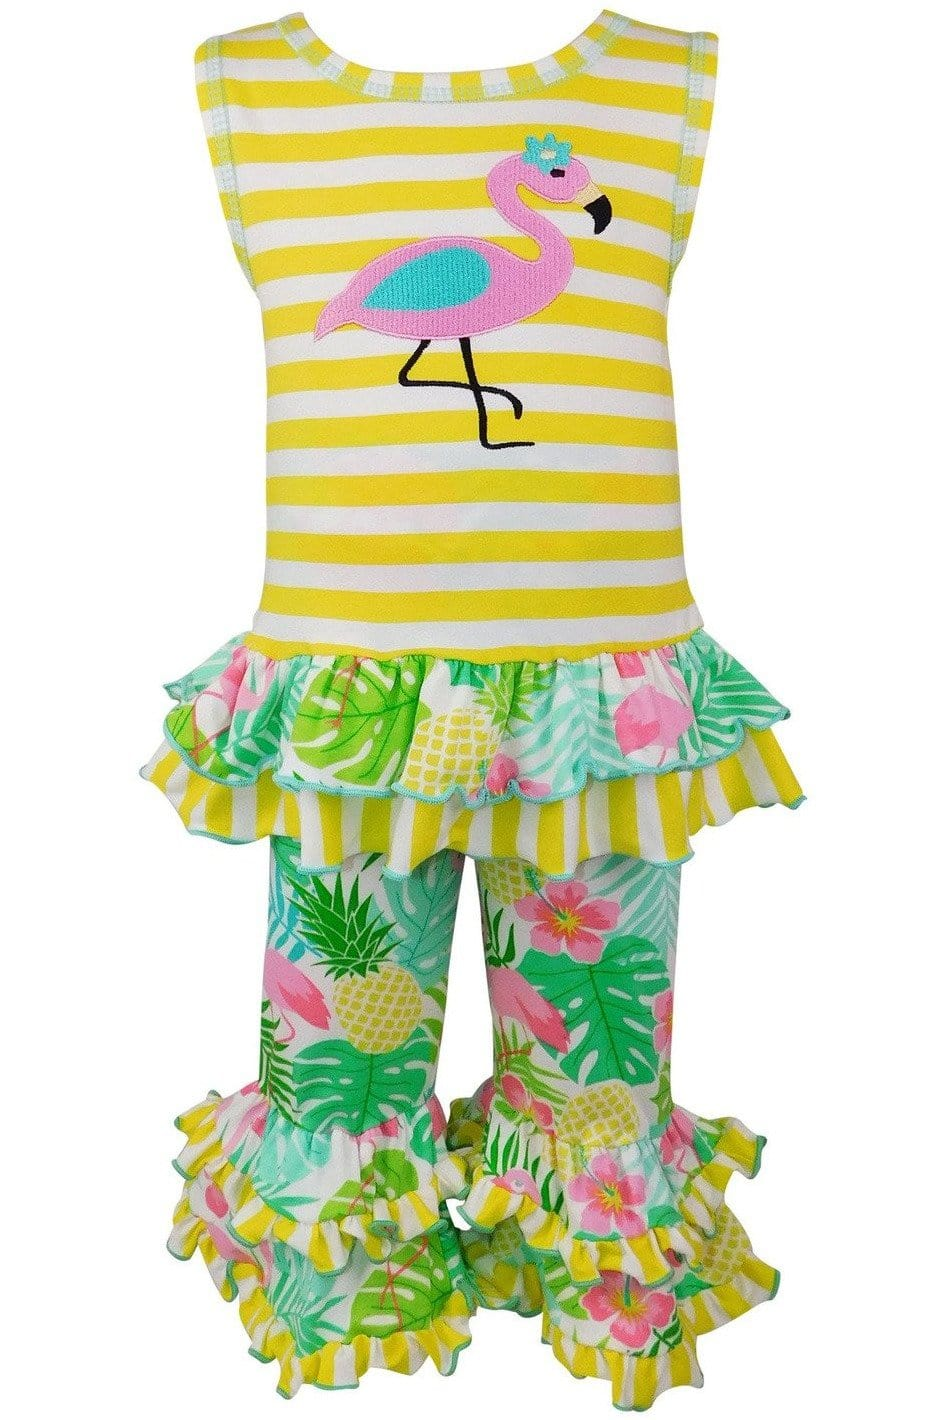 AnnLoren Big Little Girls' Pink Flamingo Palm Striped Tunic & Capri Pants Toddler Holiday Outfit - Himelhoch's